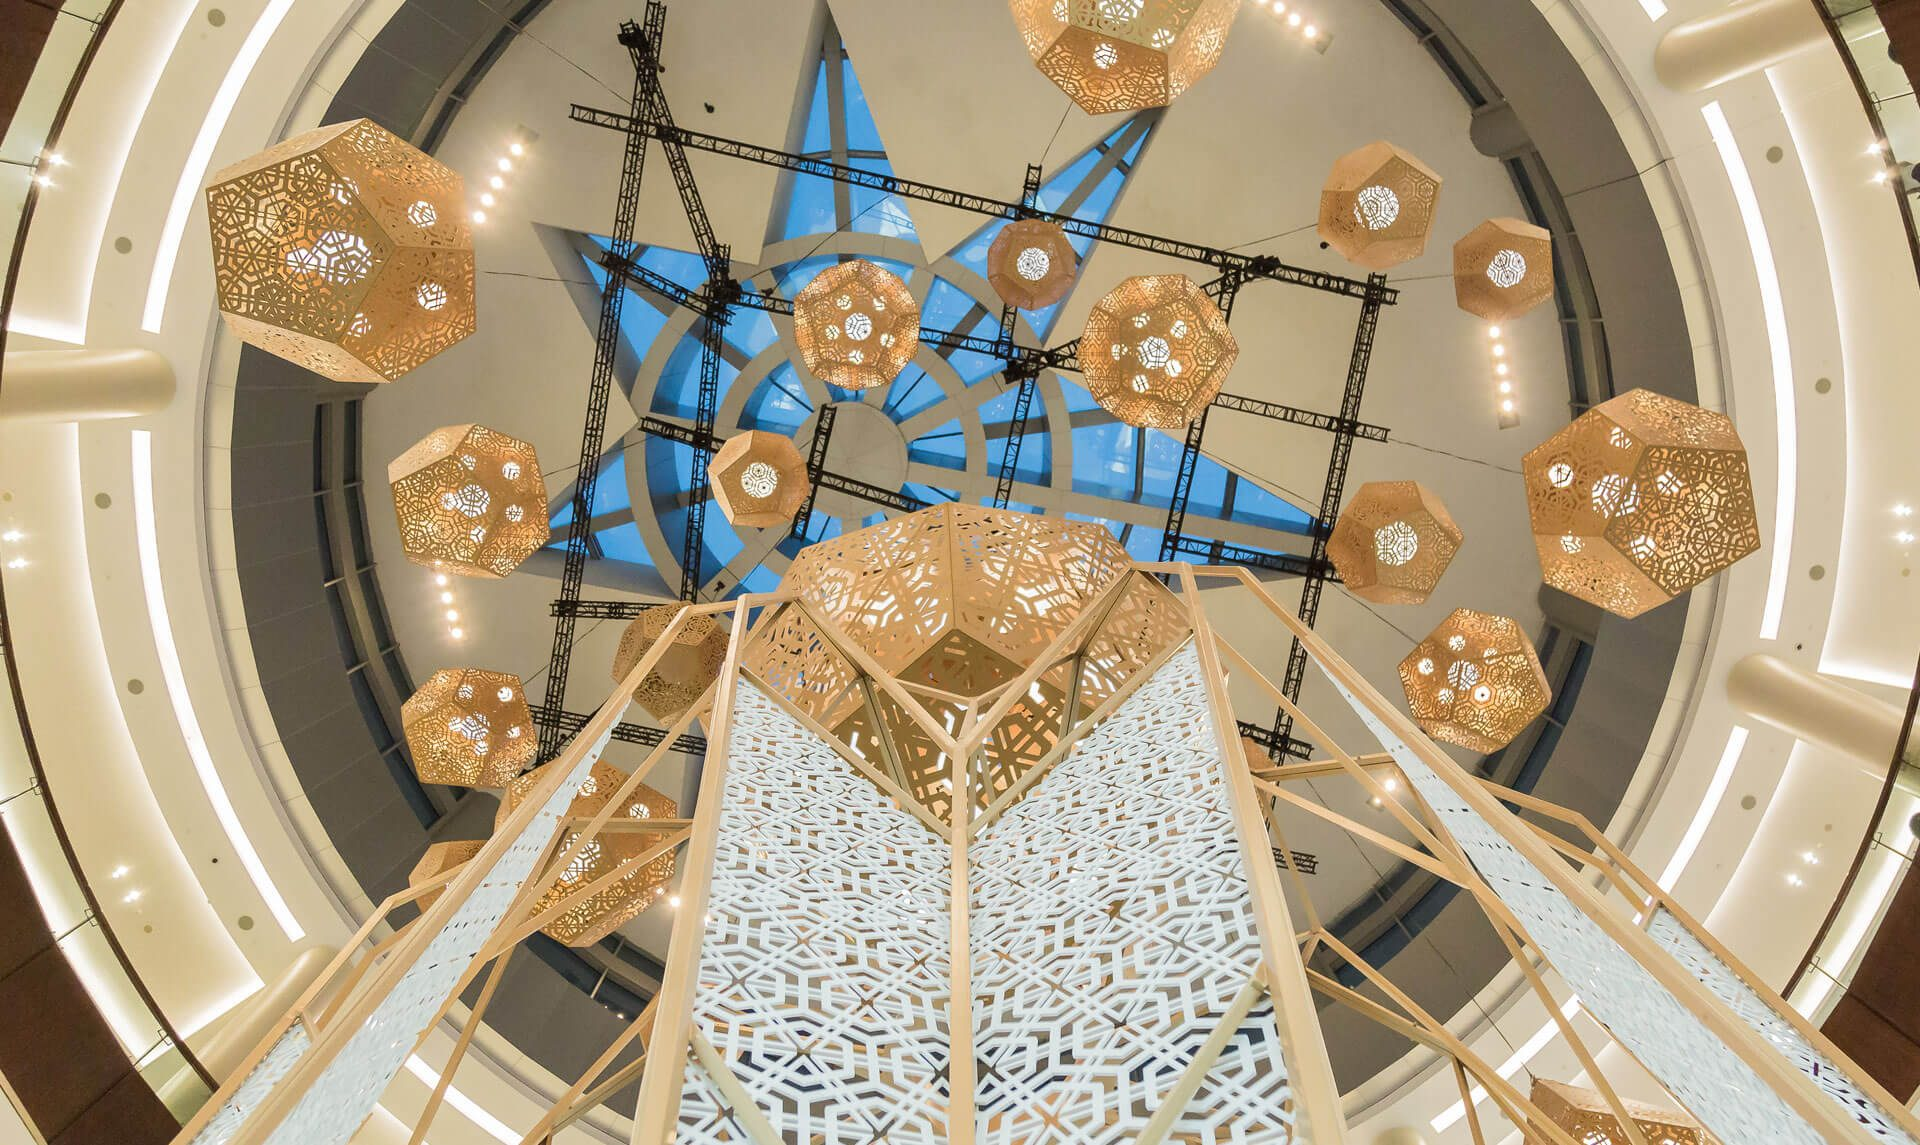 82f4e2ee4fb01 ... of modernized versions of the traditional lanterns in different shapes  and sizes increased the mall s profile on social media presence